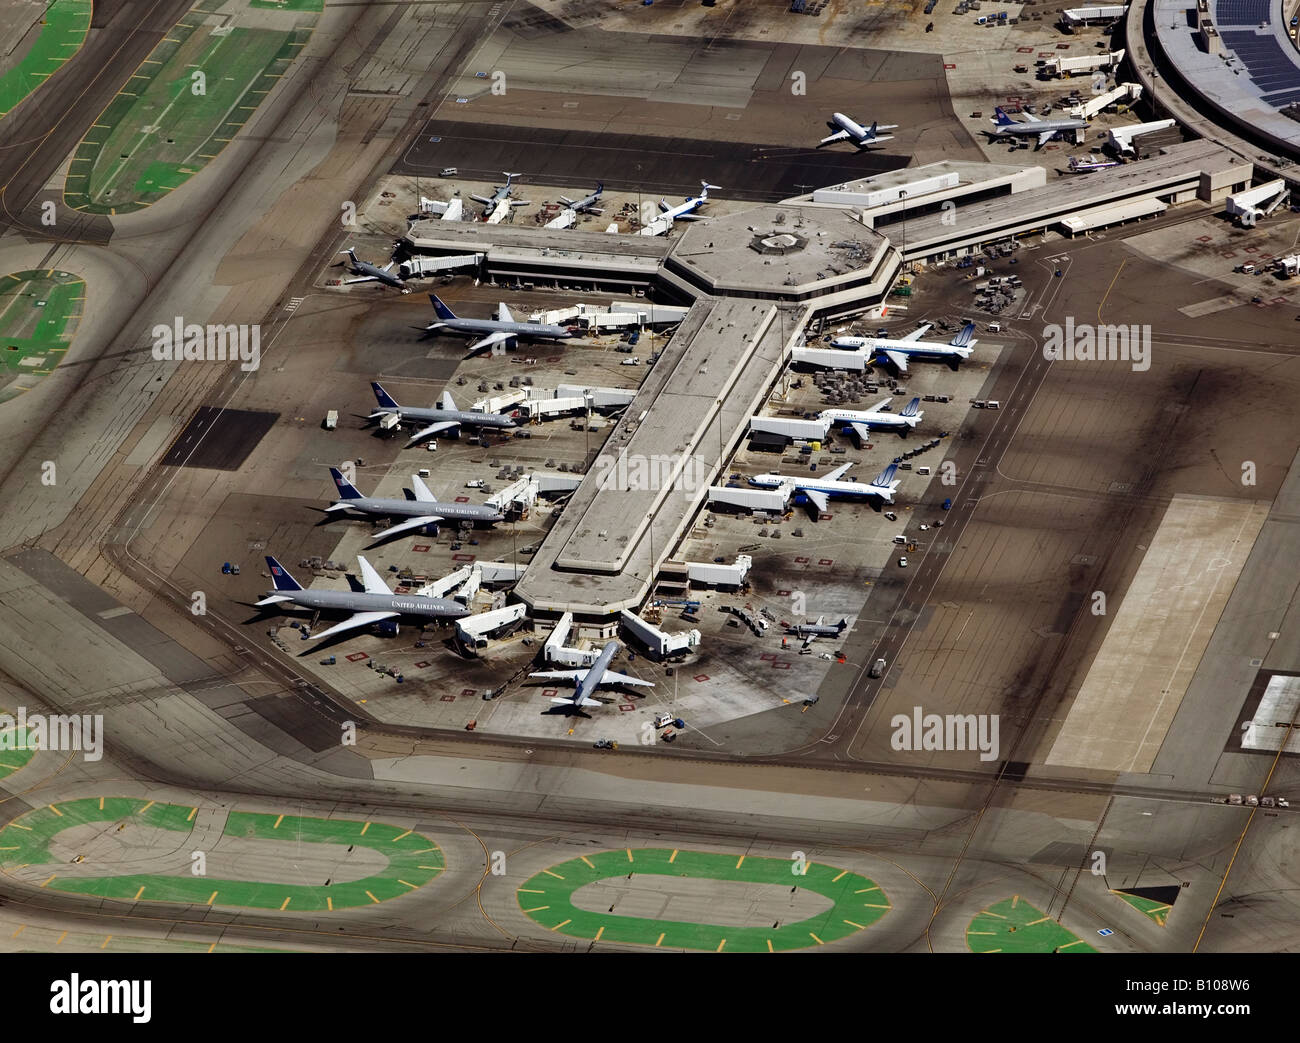 aerial above United Airlines terminal San Francisco International airport SFO - Stock Image